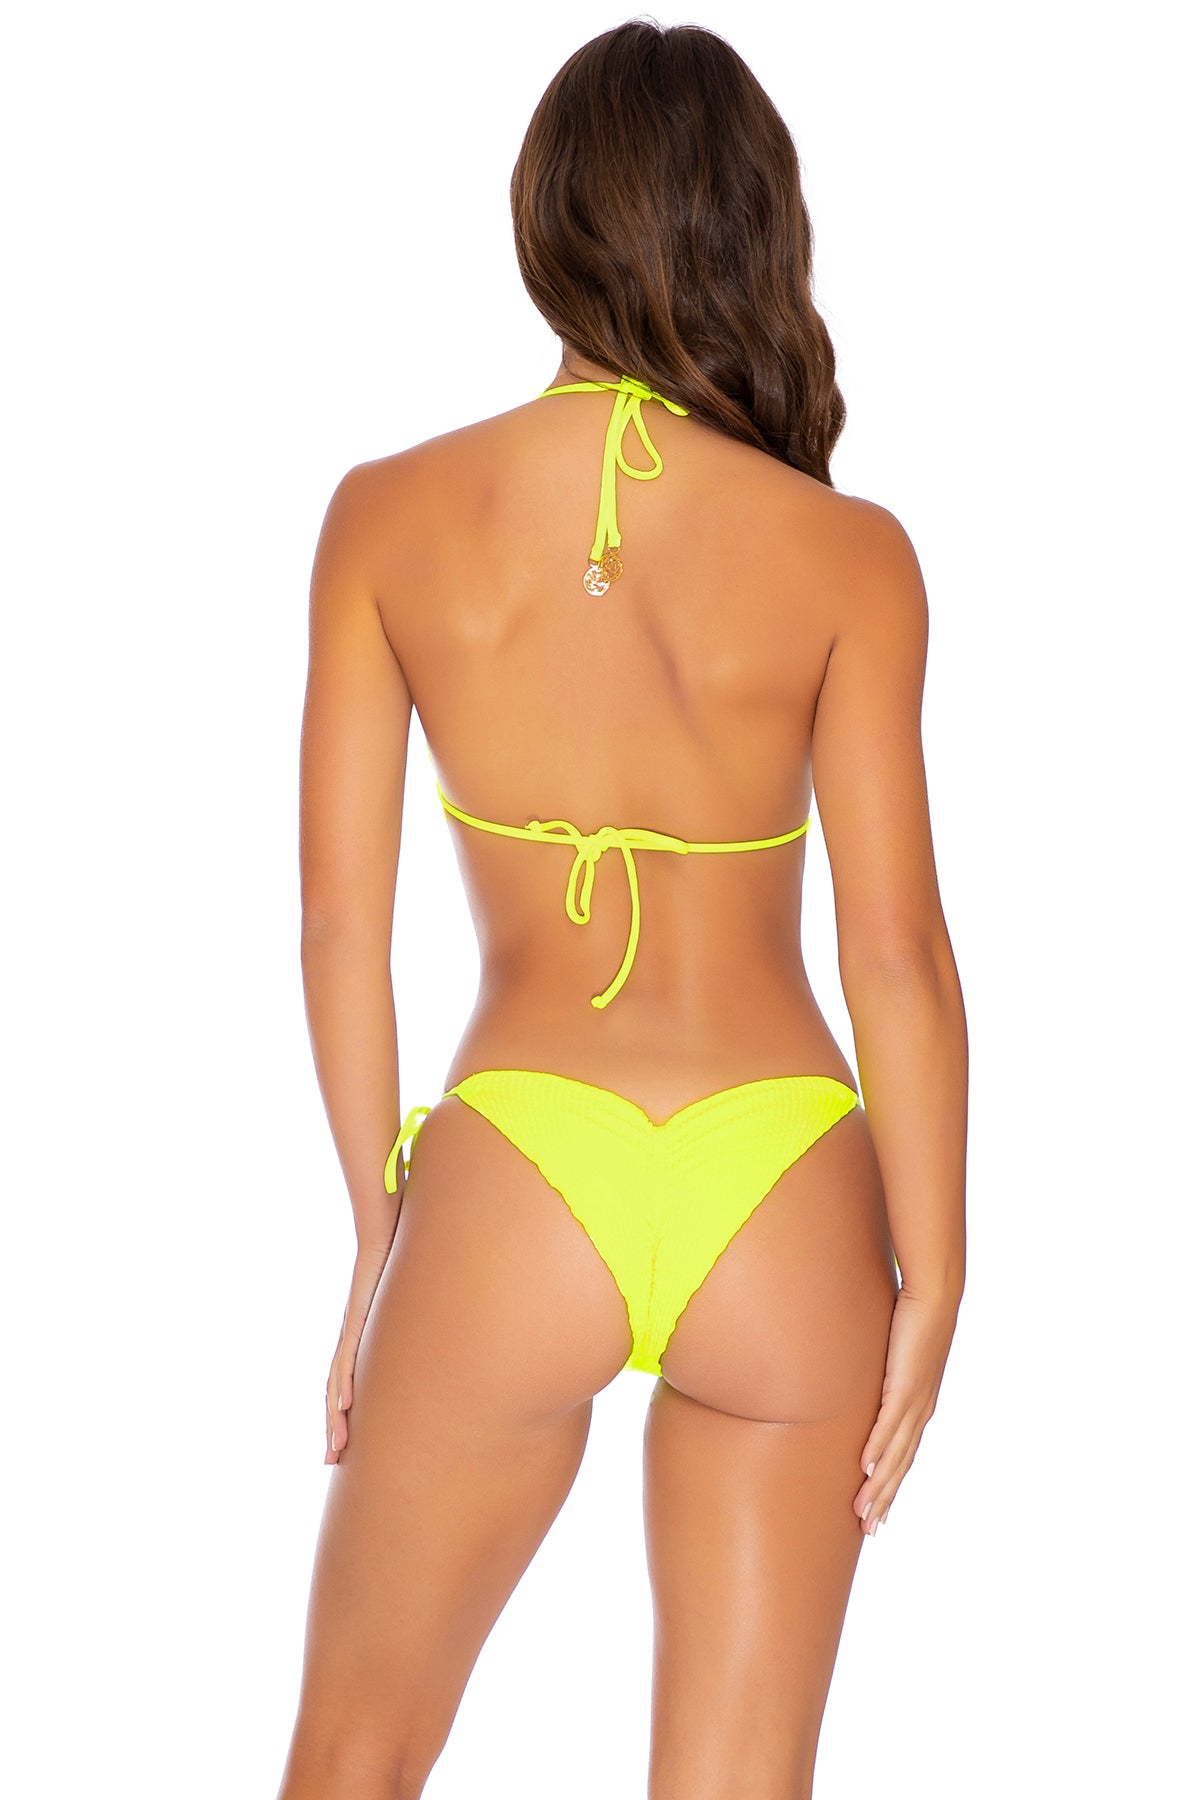 PURA CURIOSIDAD - Triangle Top & Wavey Ruched Back Tie Side Bottom • Neon Yellow